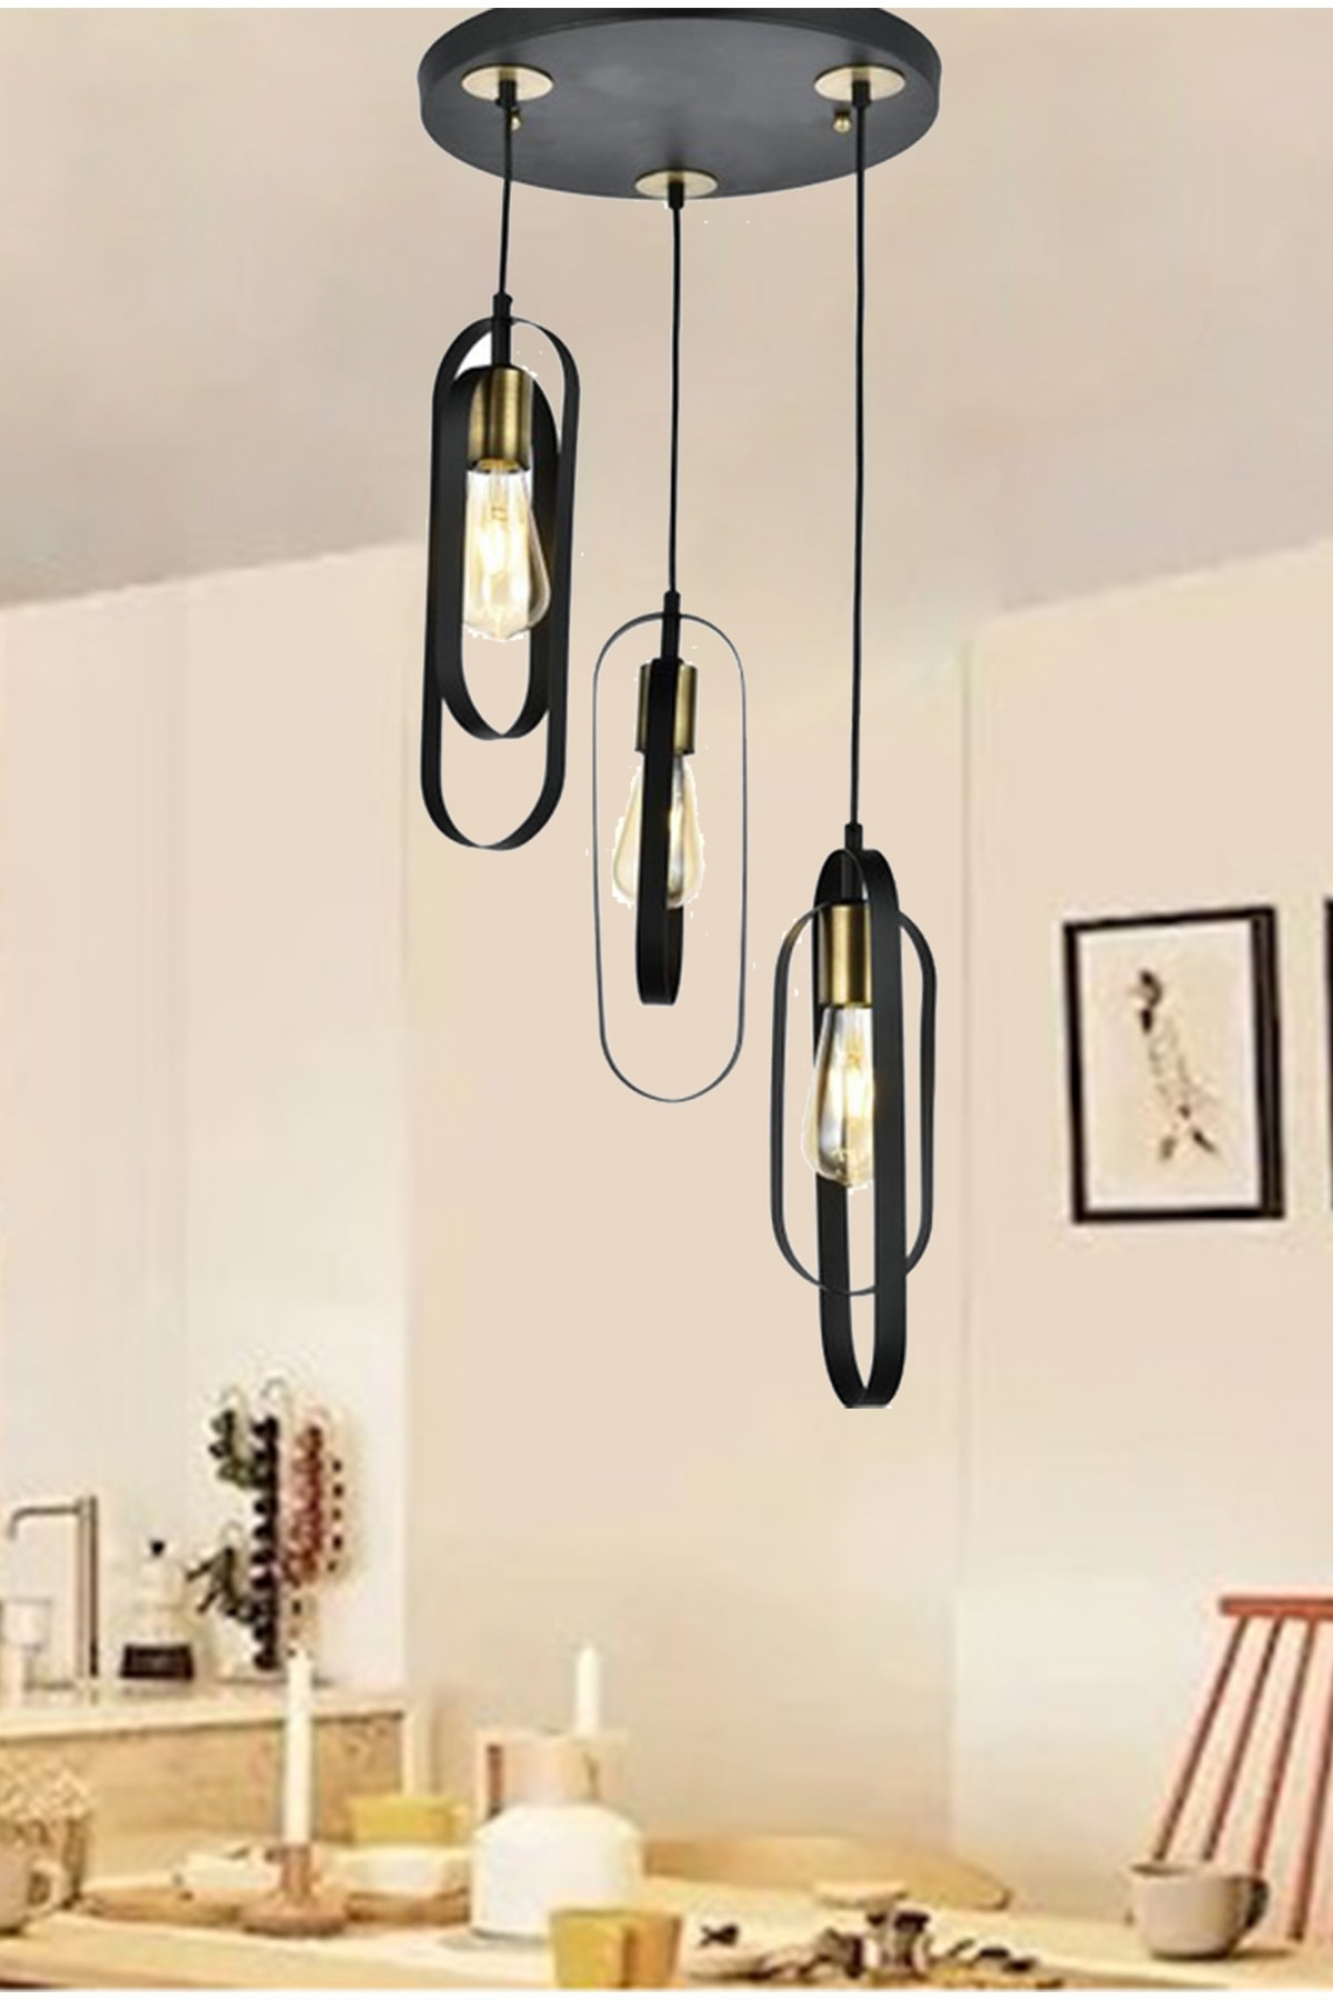 Hanging lamp elegance black